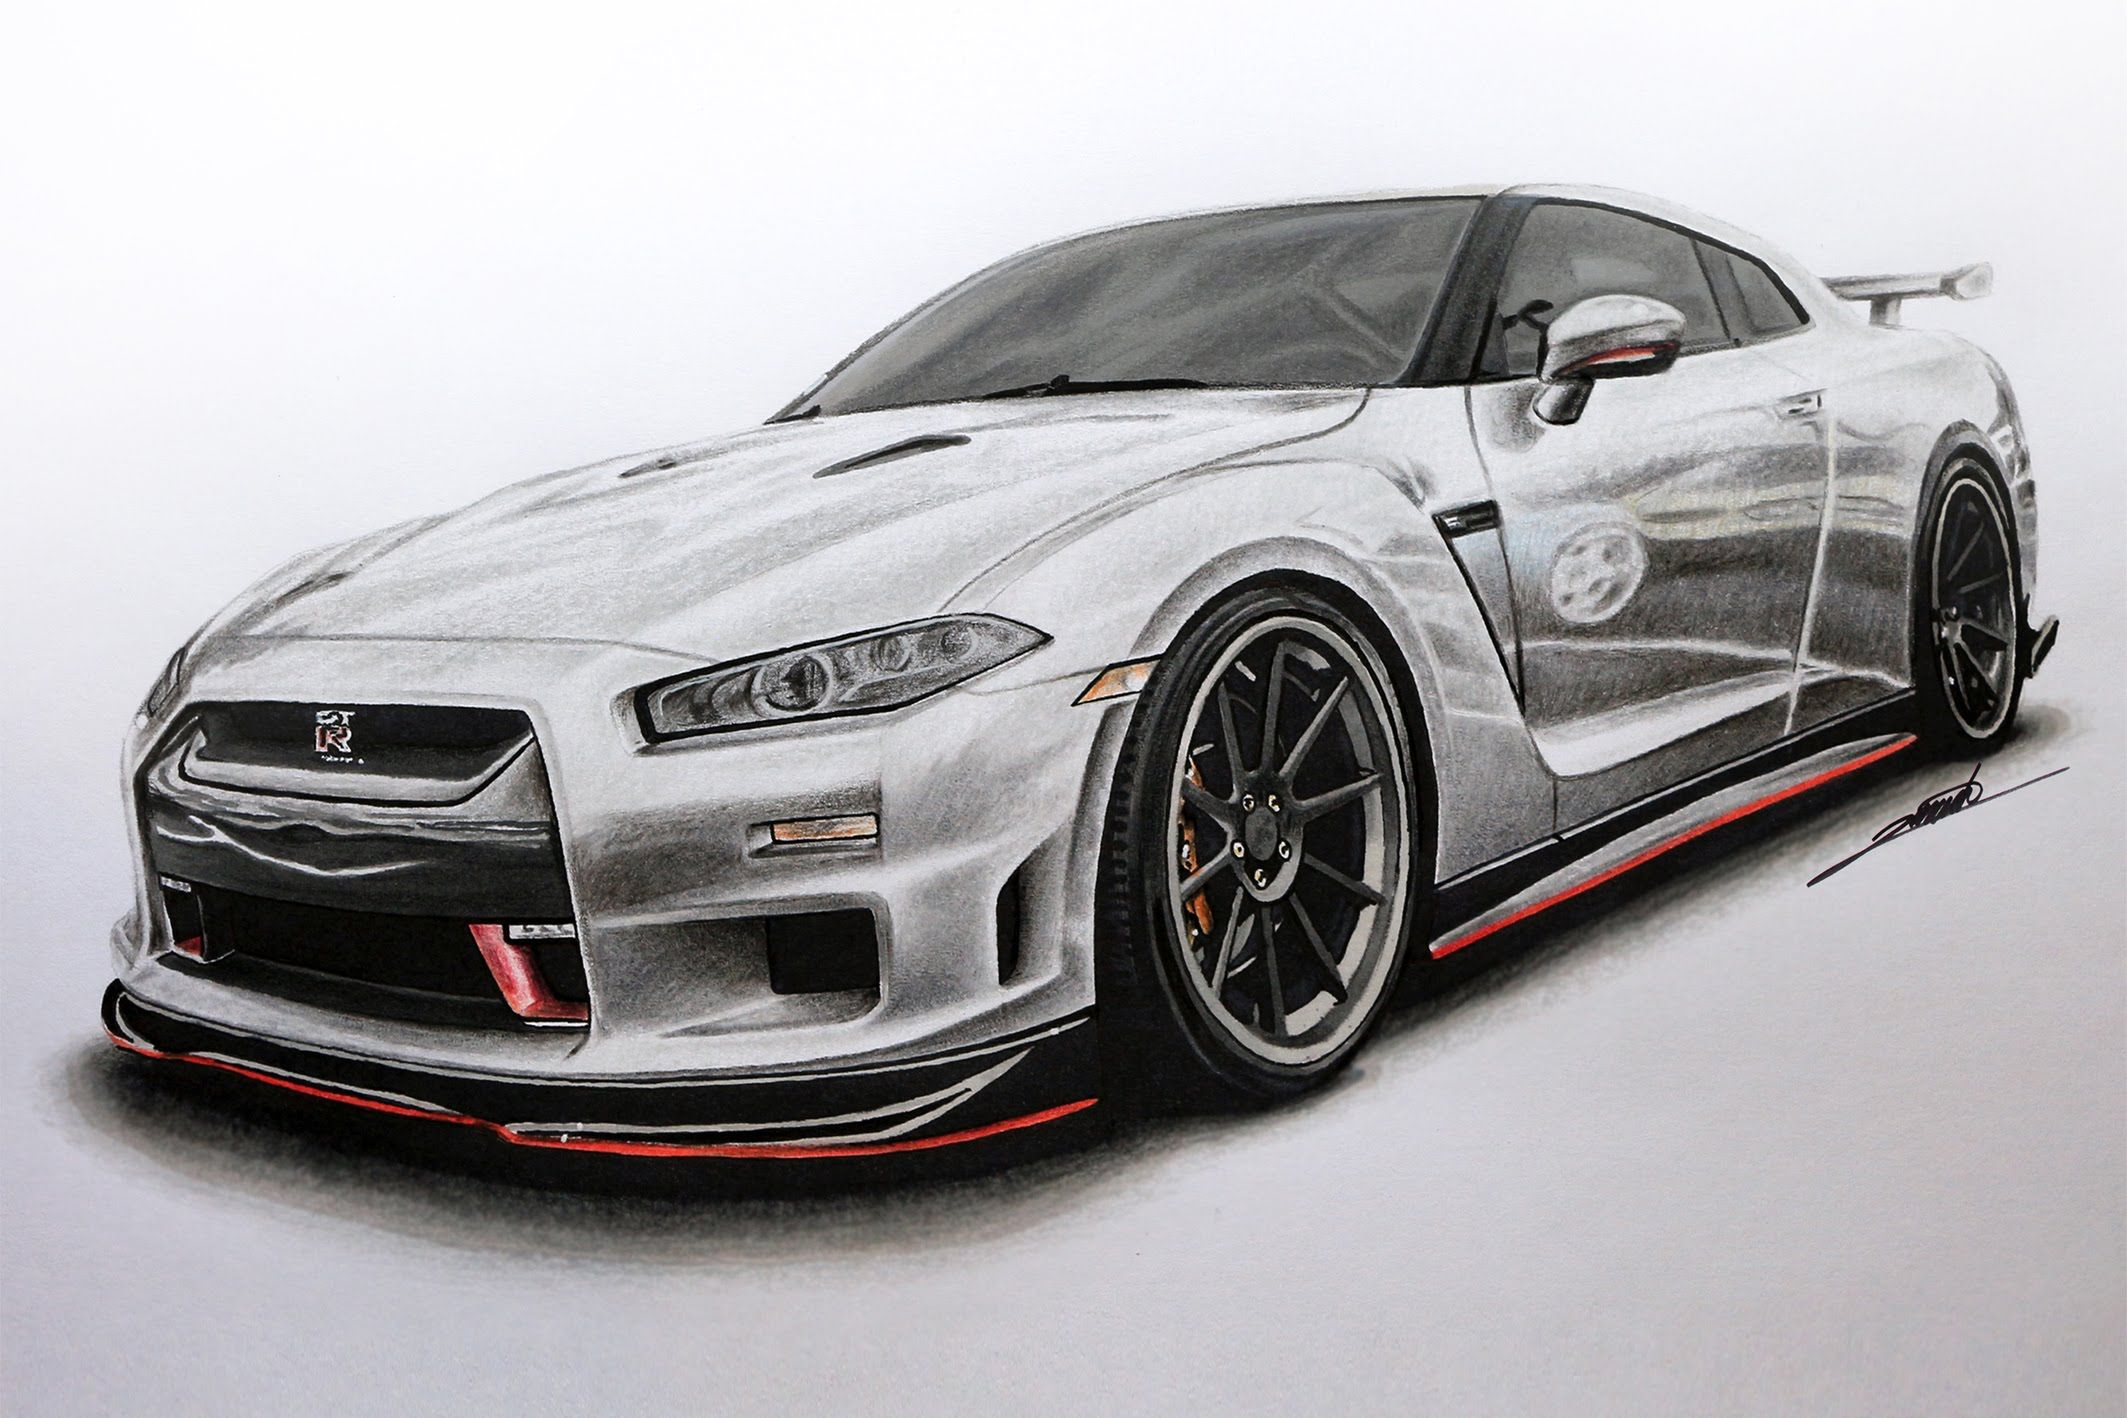 Nissan gtr edition r34 concept drawing by roman miah